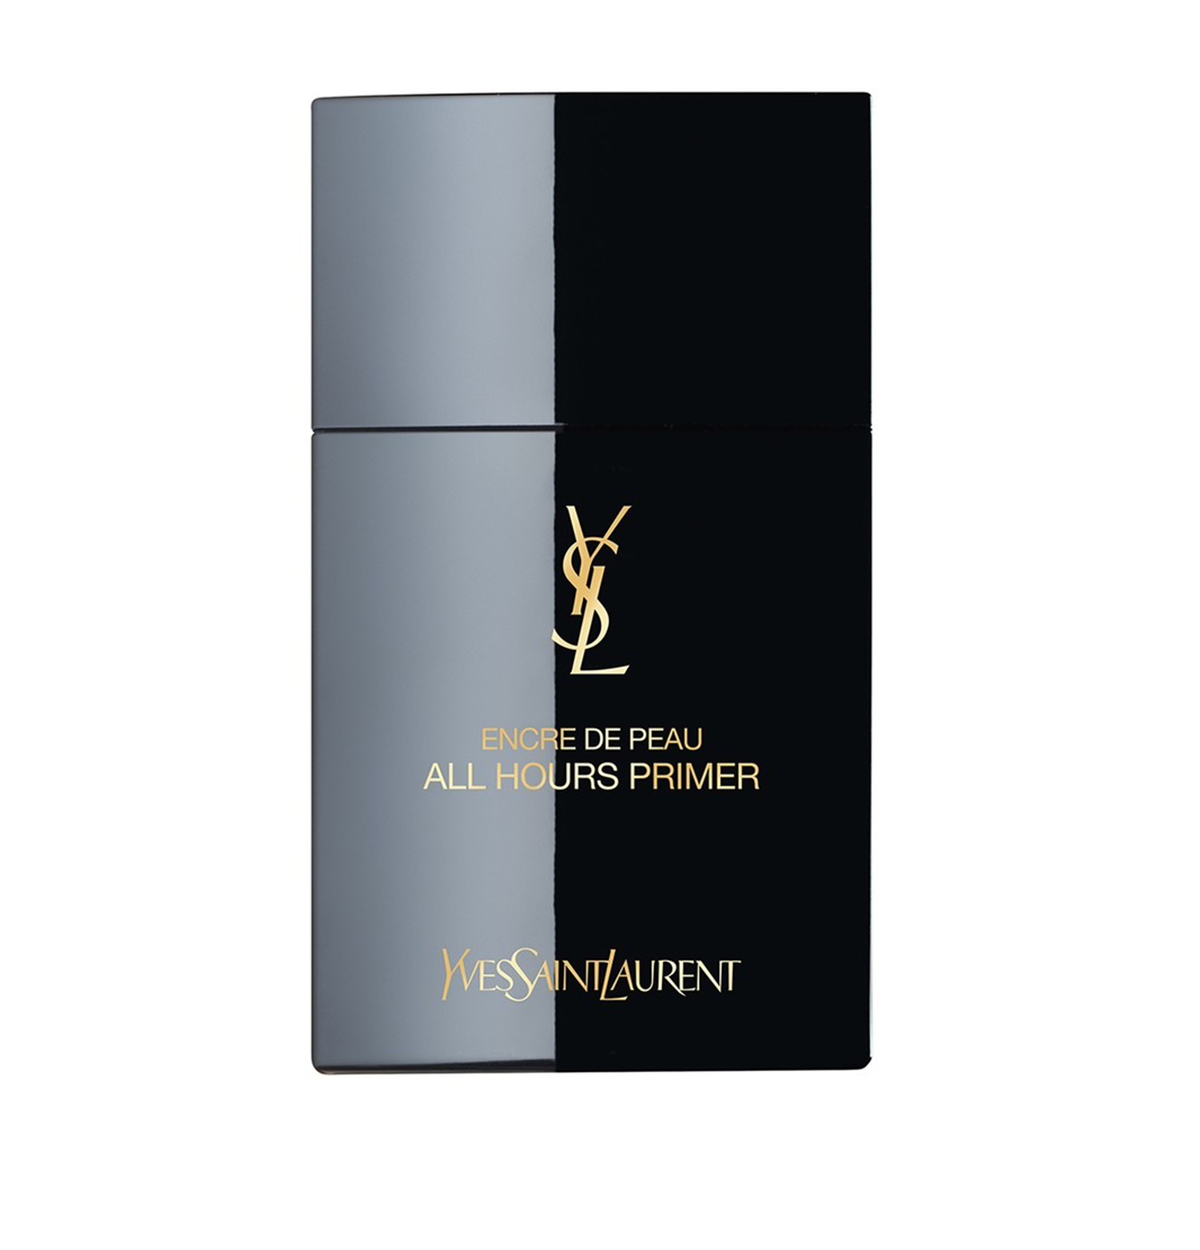 Yves Saint Laurent, All hours primer